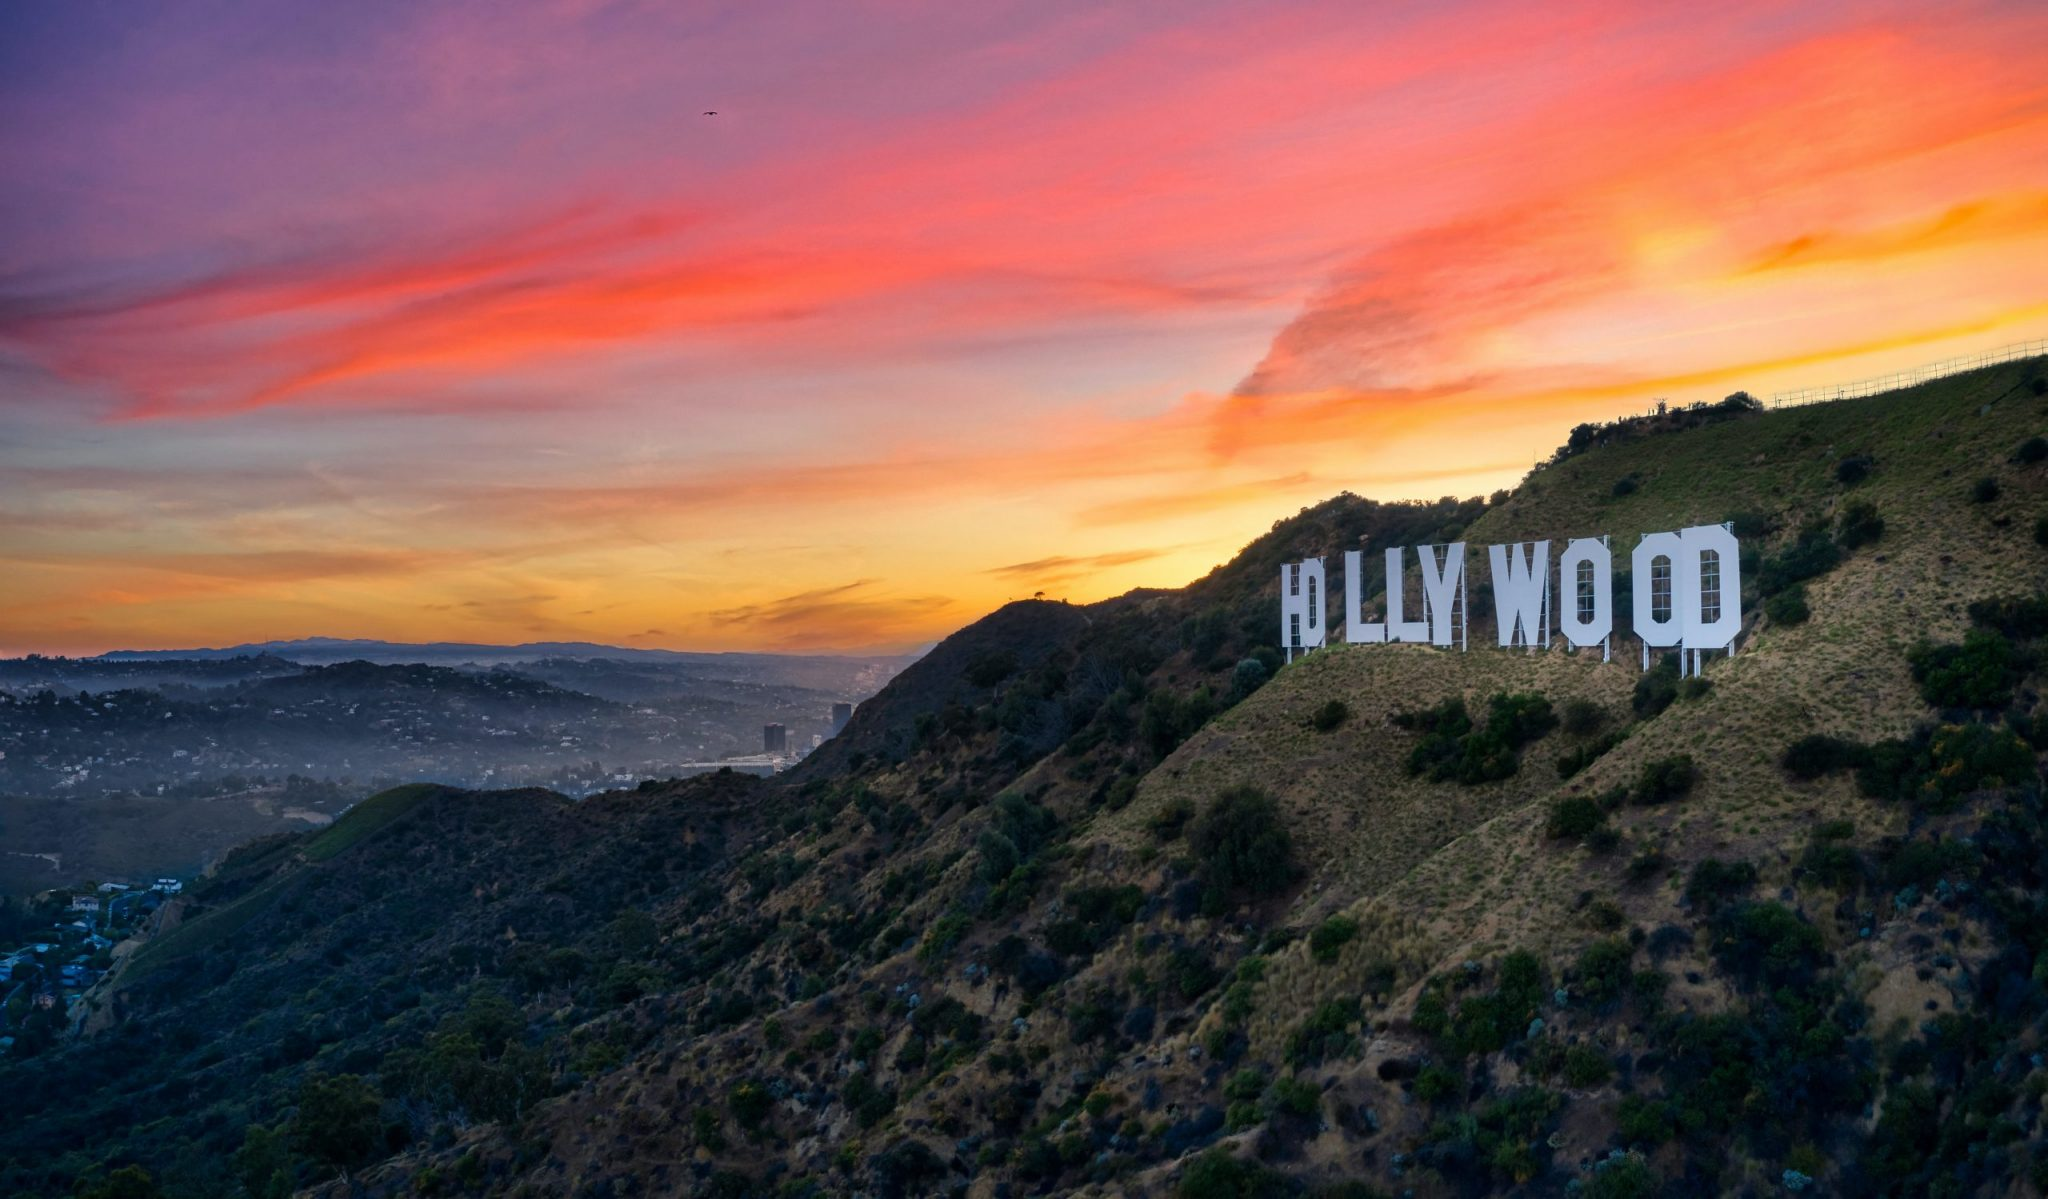 Hiking the Hollywood Sign from Lake Hollywood Park